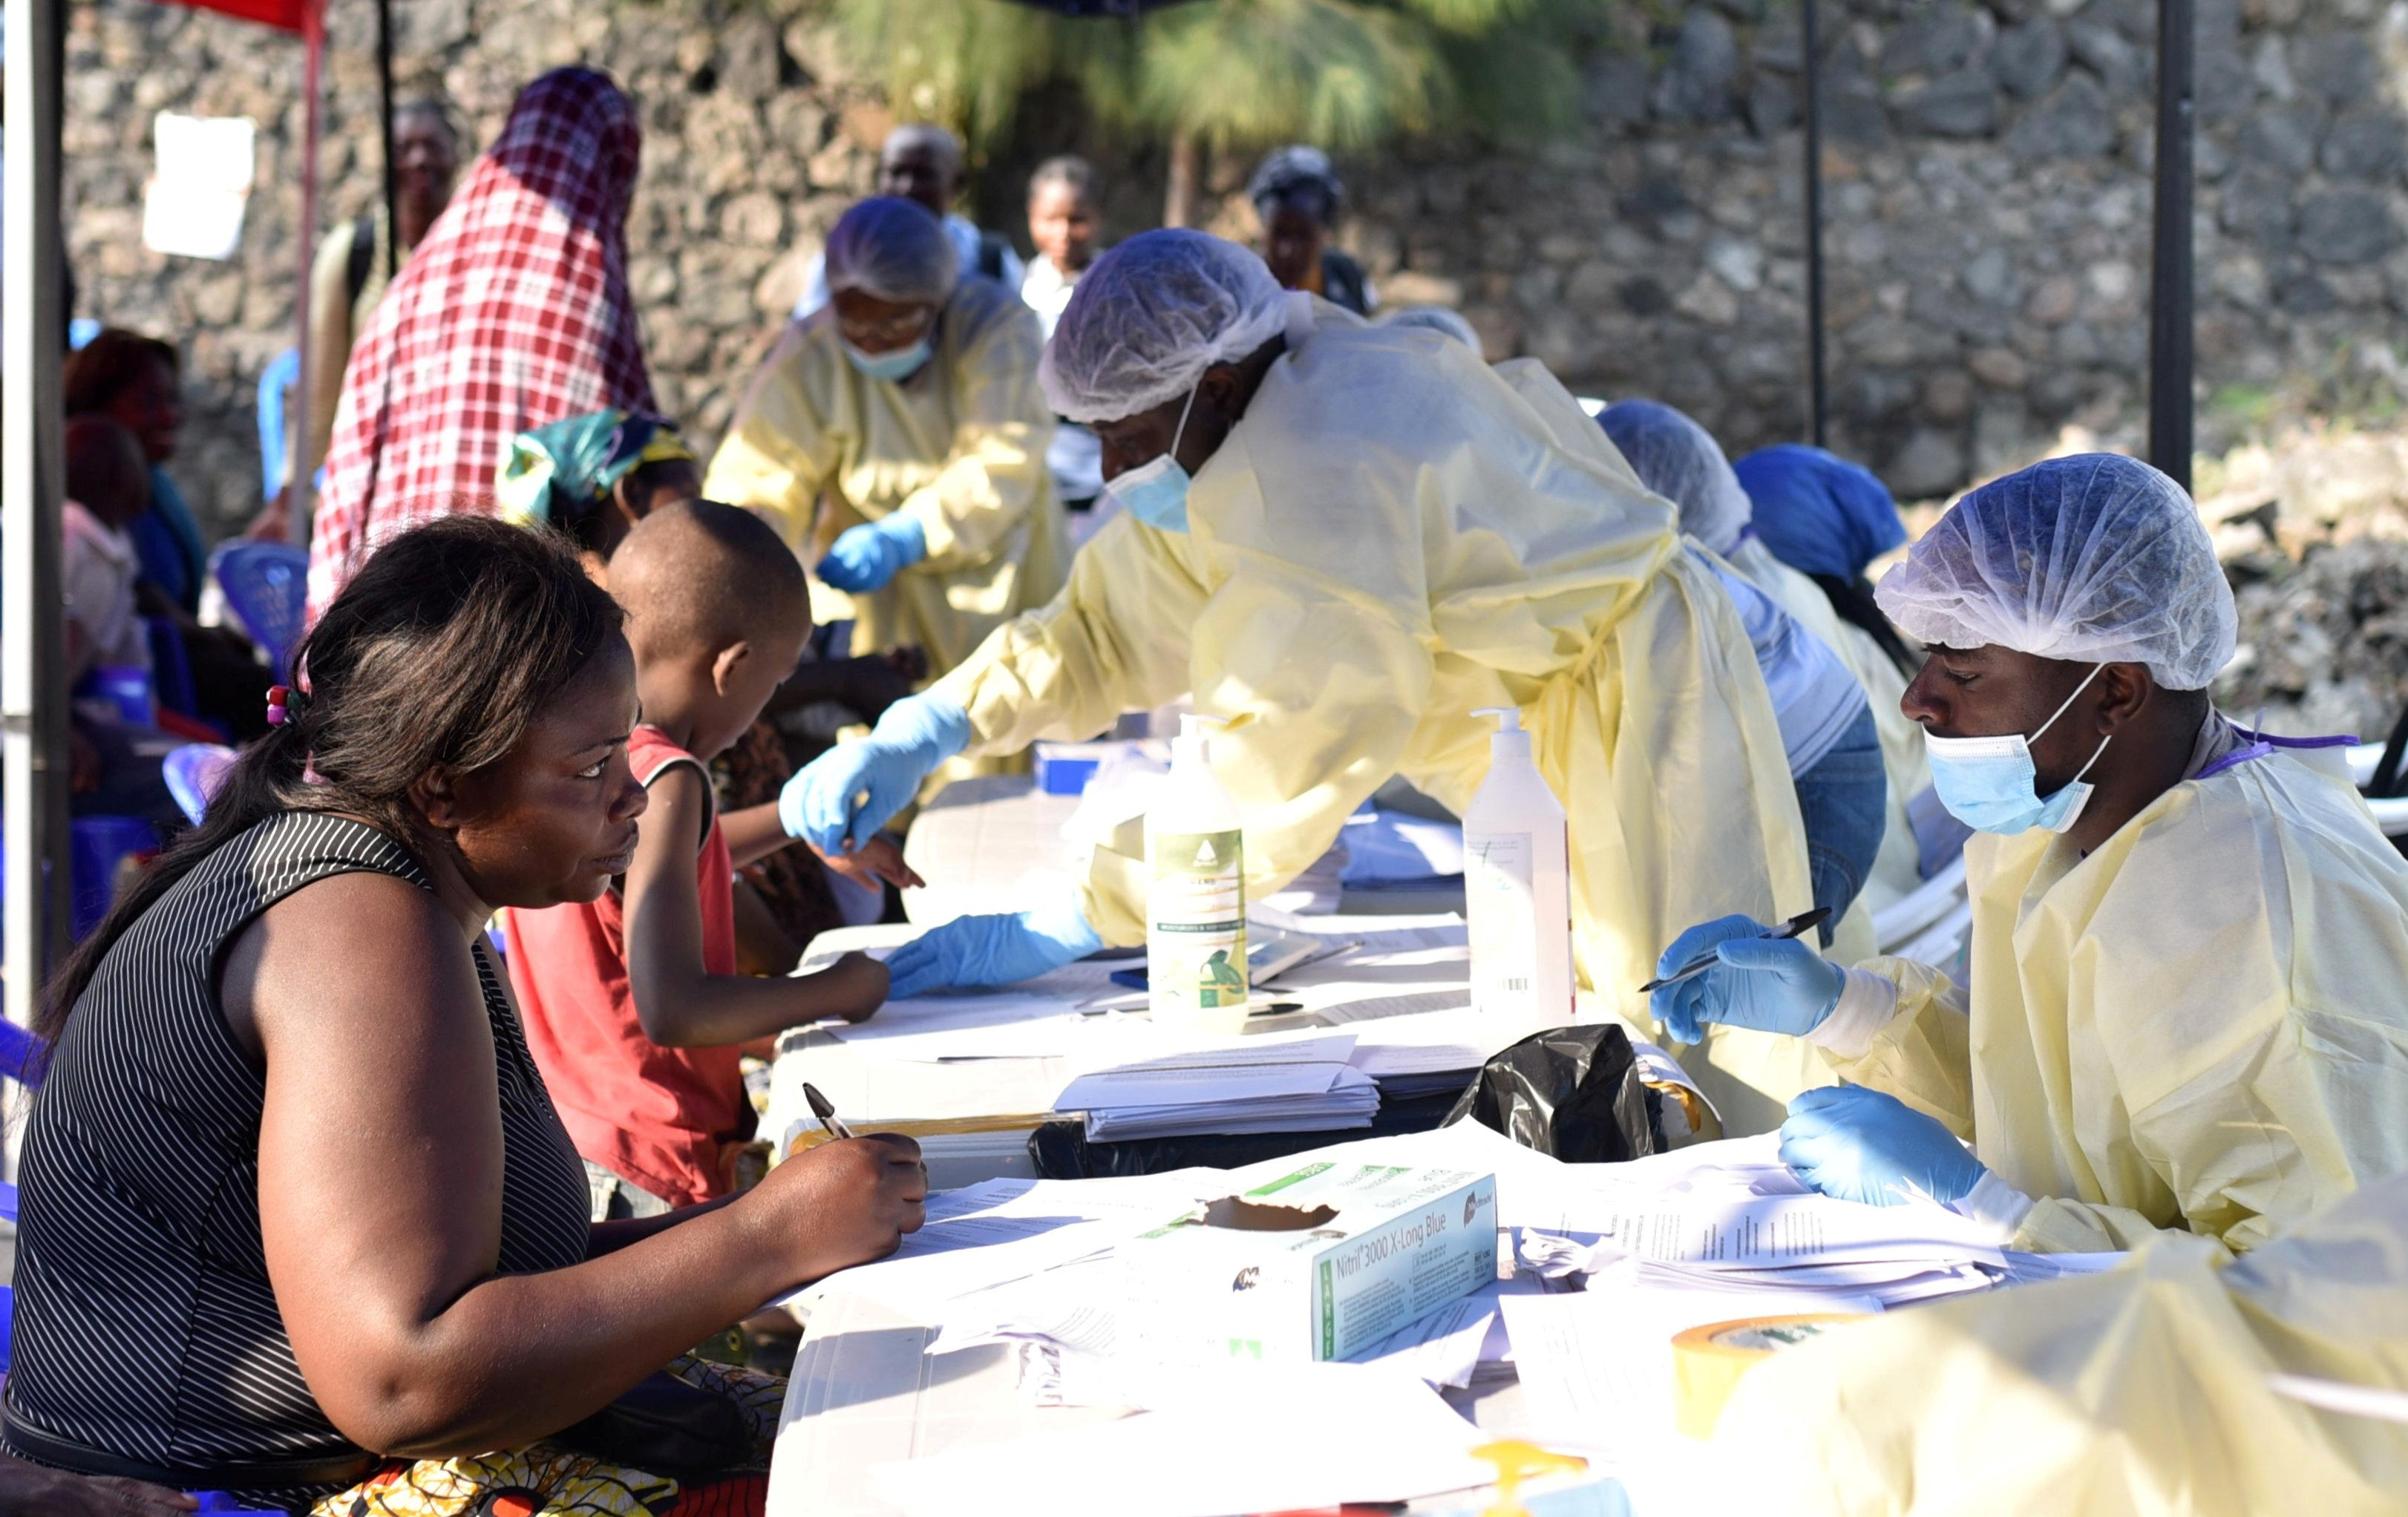 Deployment of second Ebola vaccine would not be quick fix